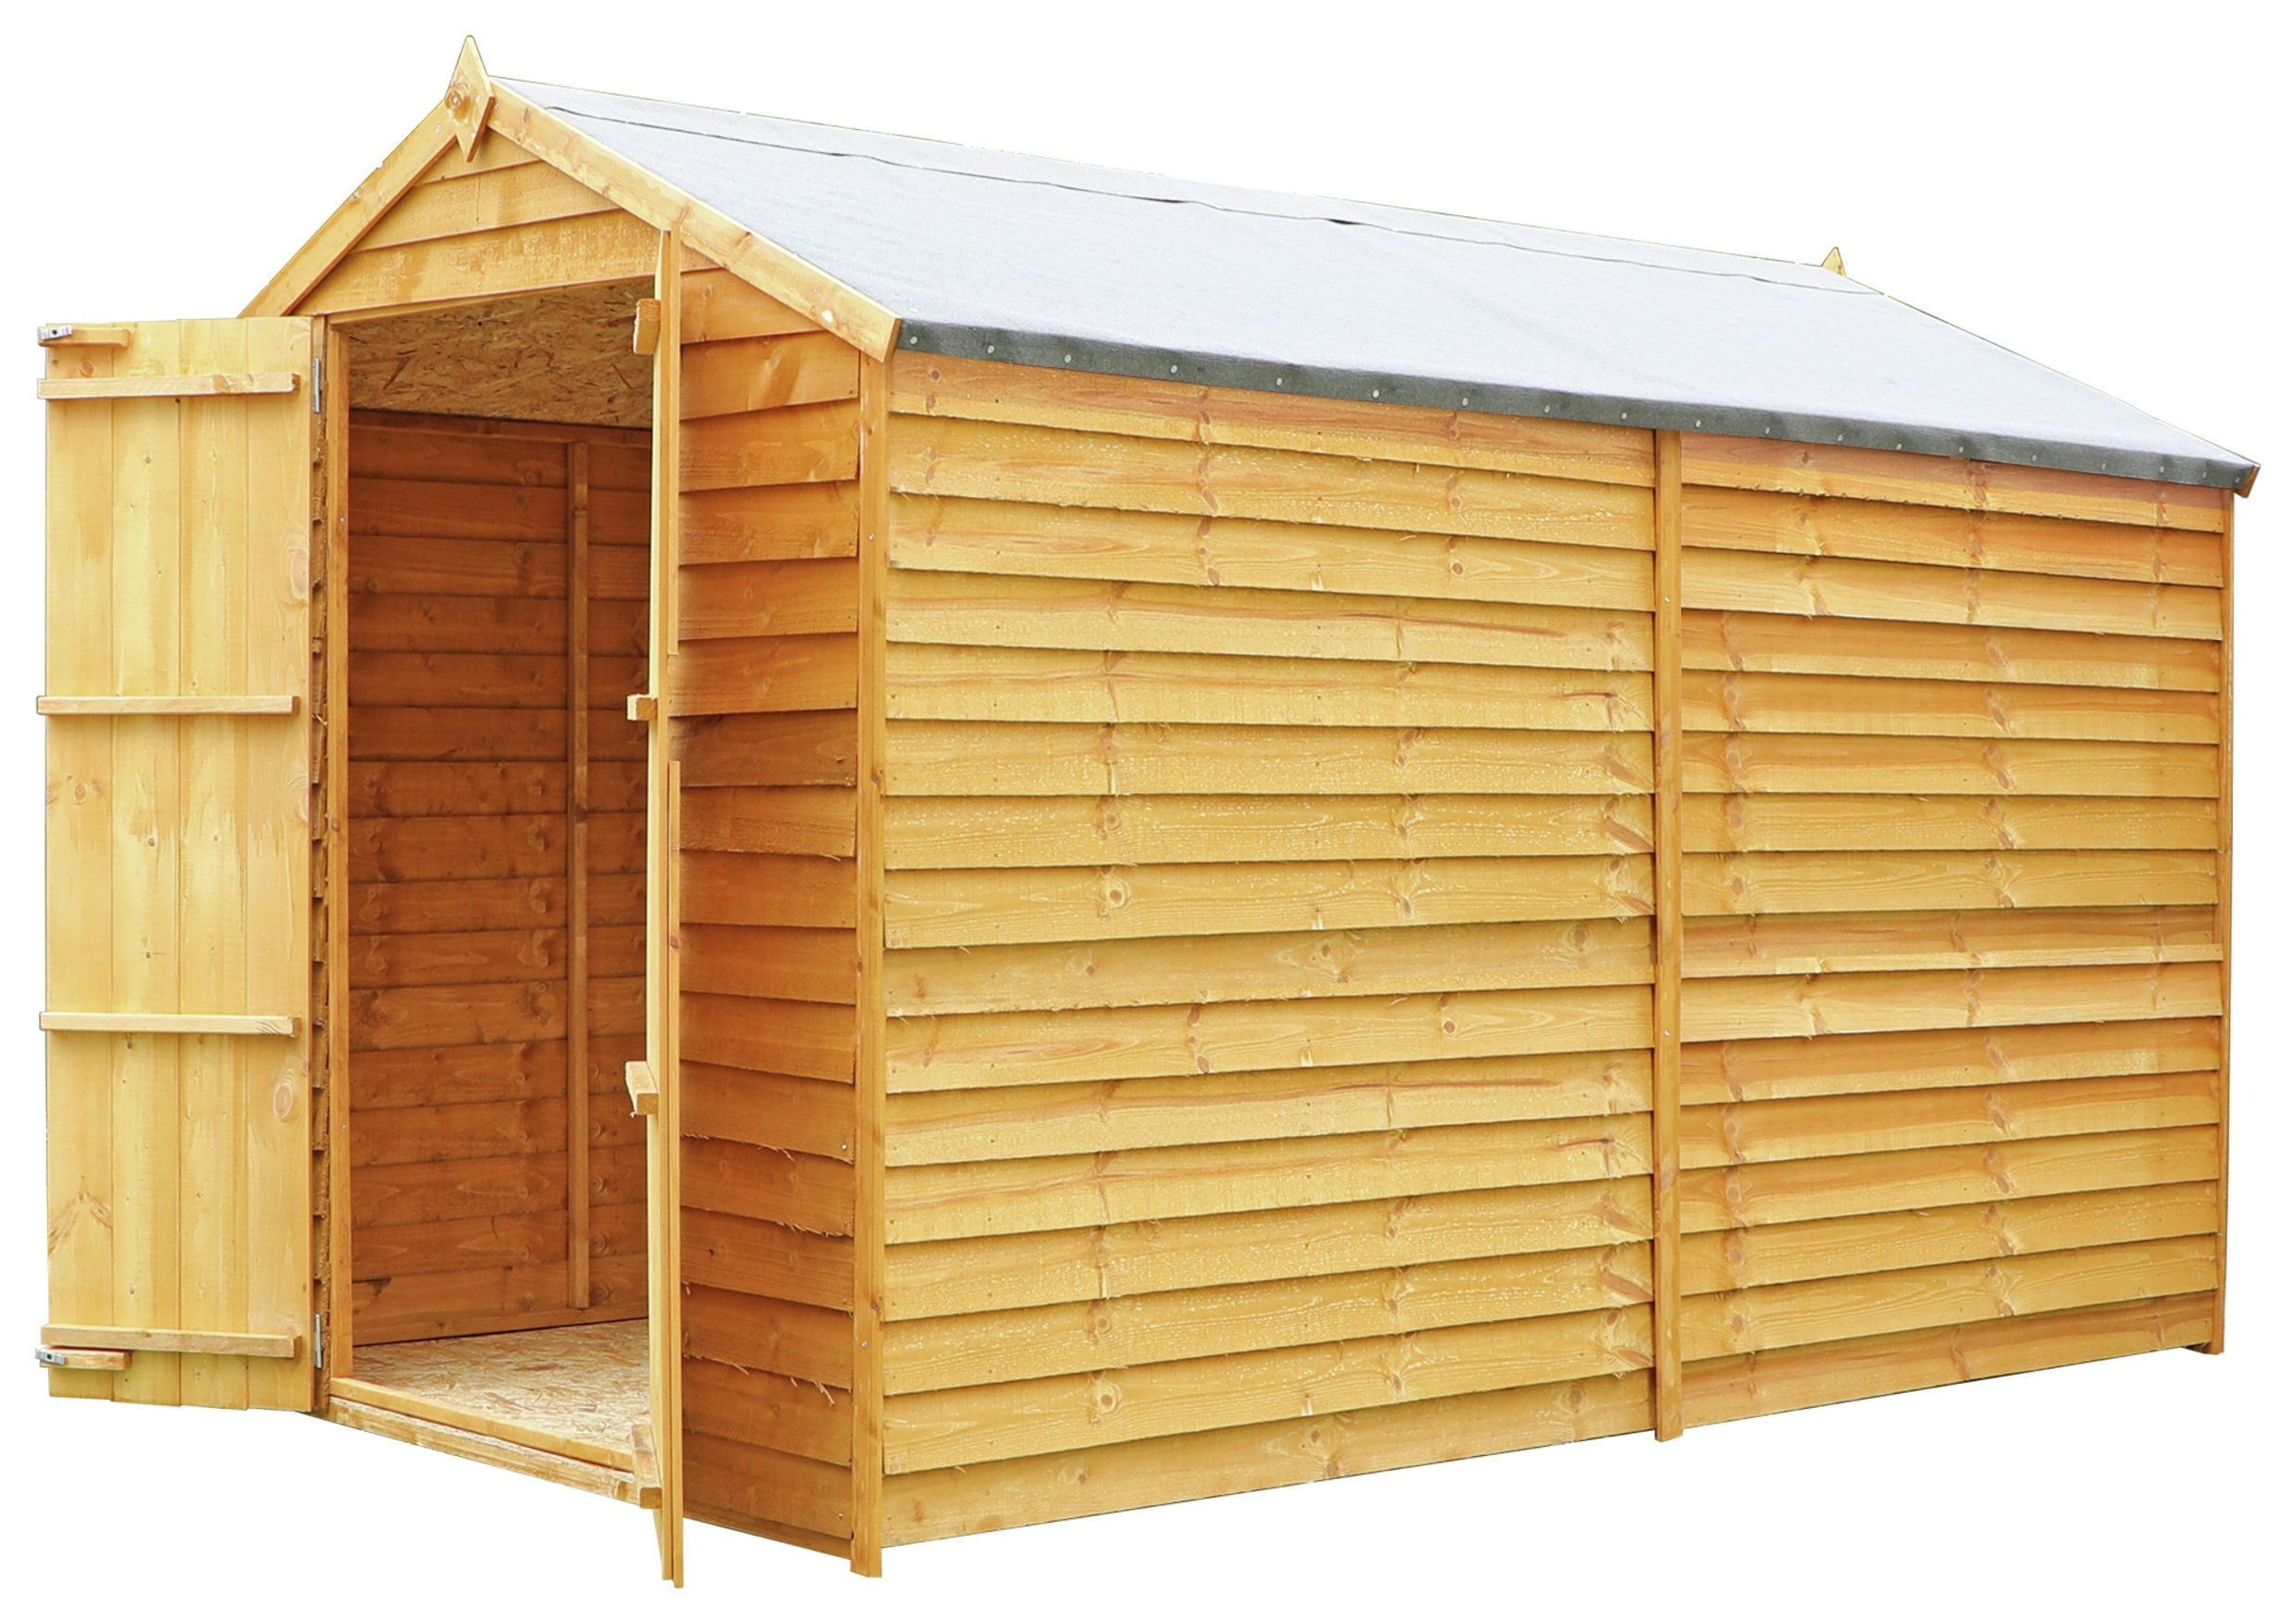 Mercia Overlap Windowless Shed - 10 x 6ft at Argos